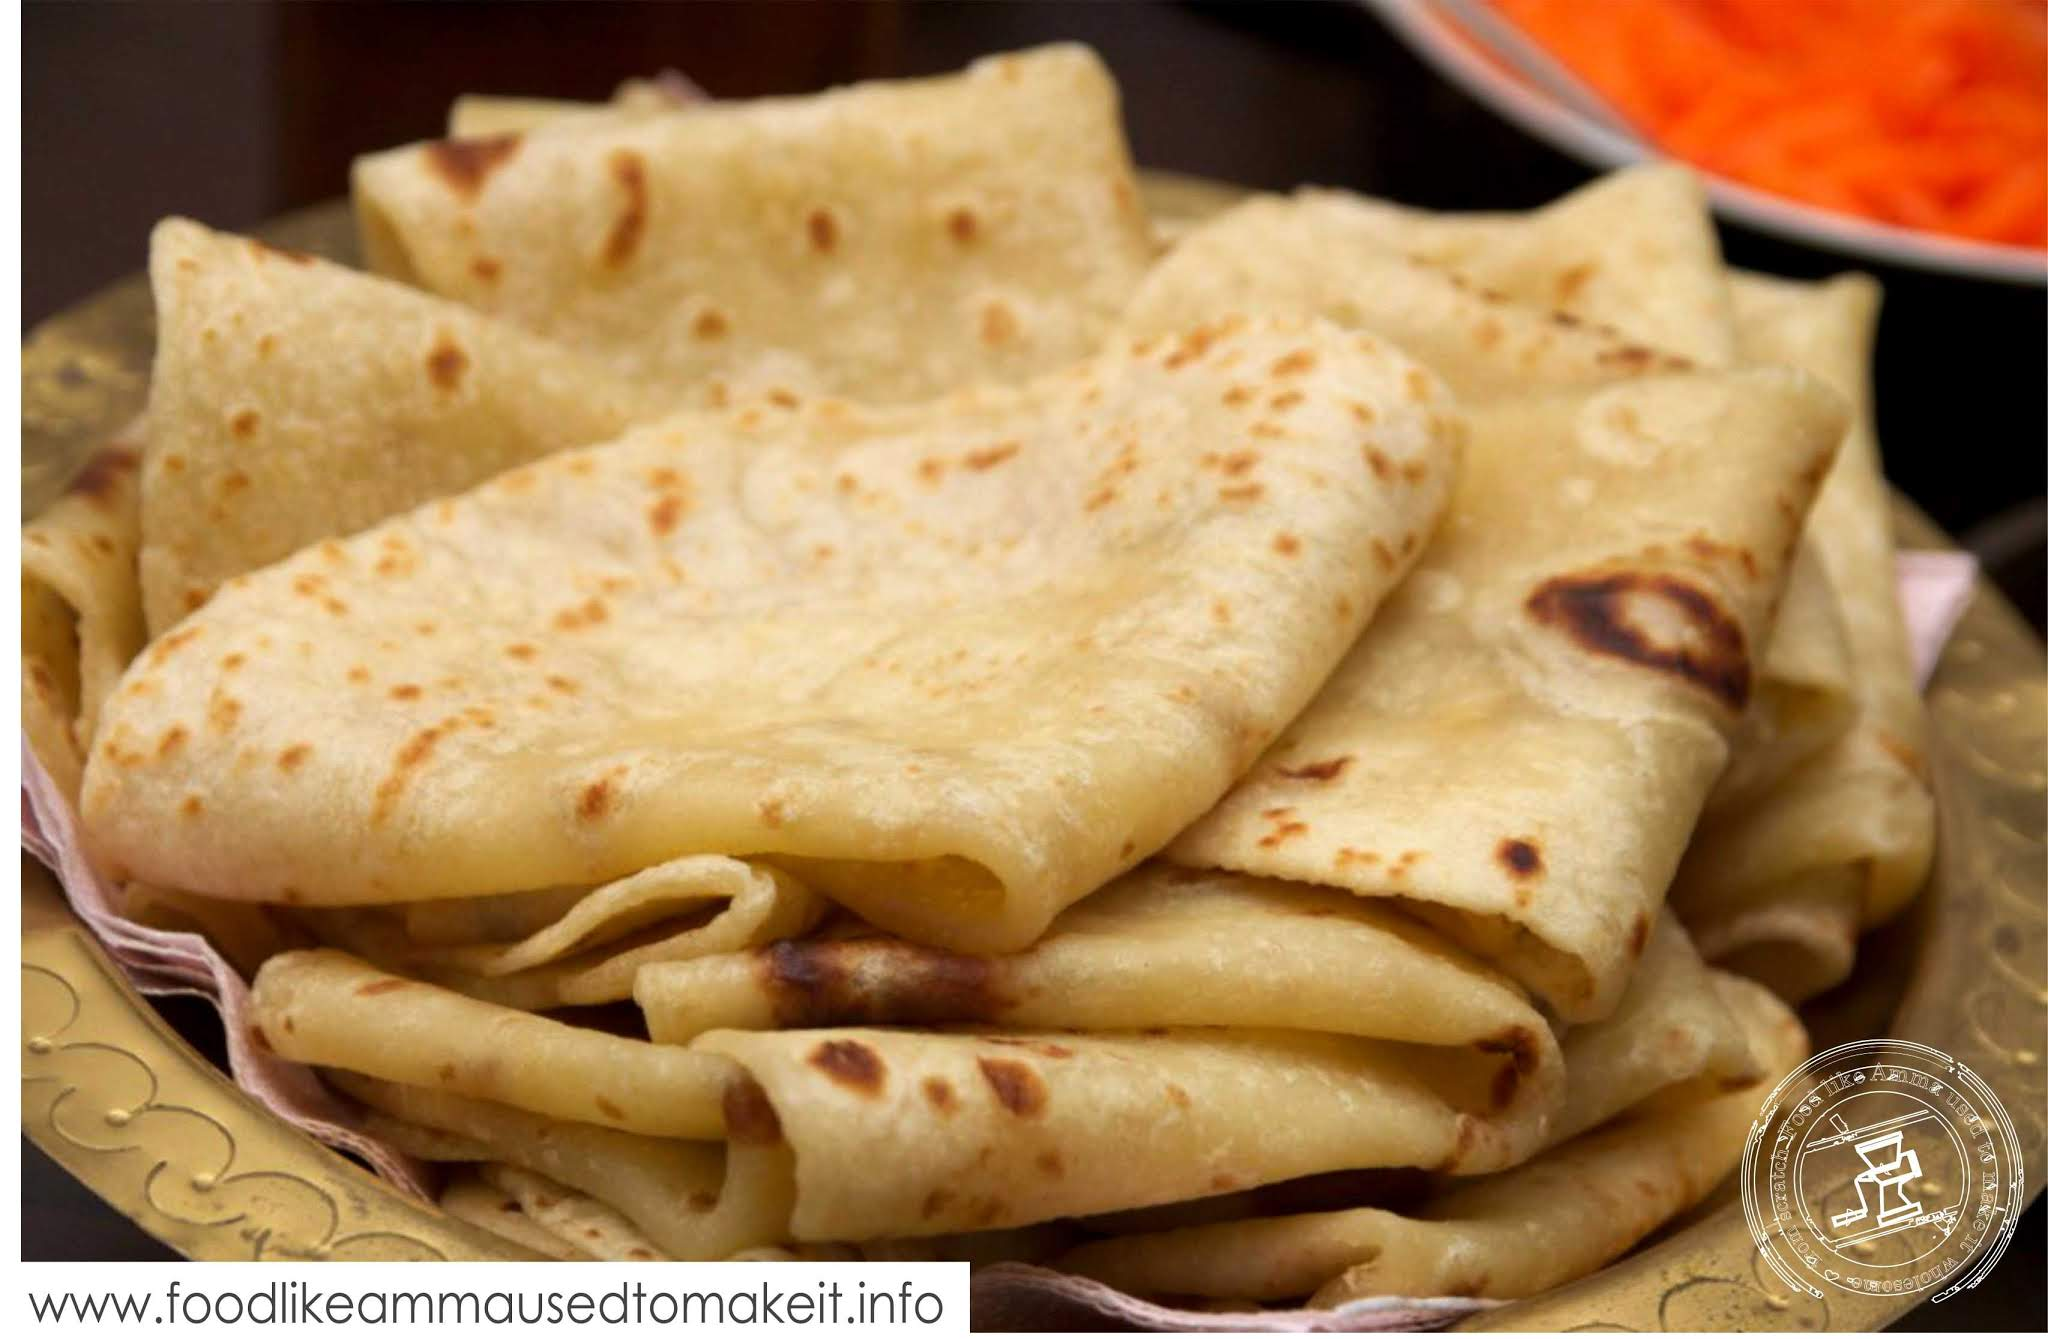 South African Soft Roti Recipe